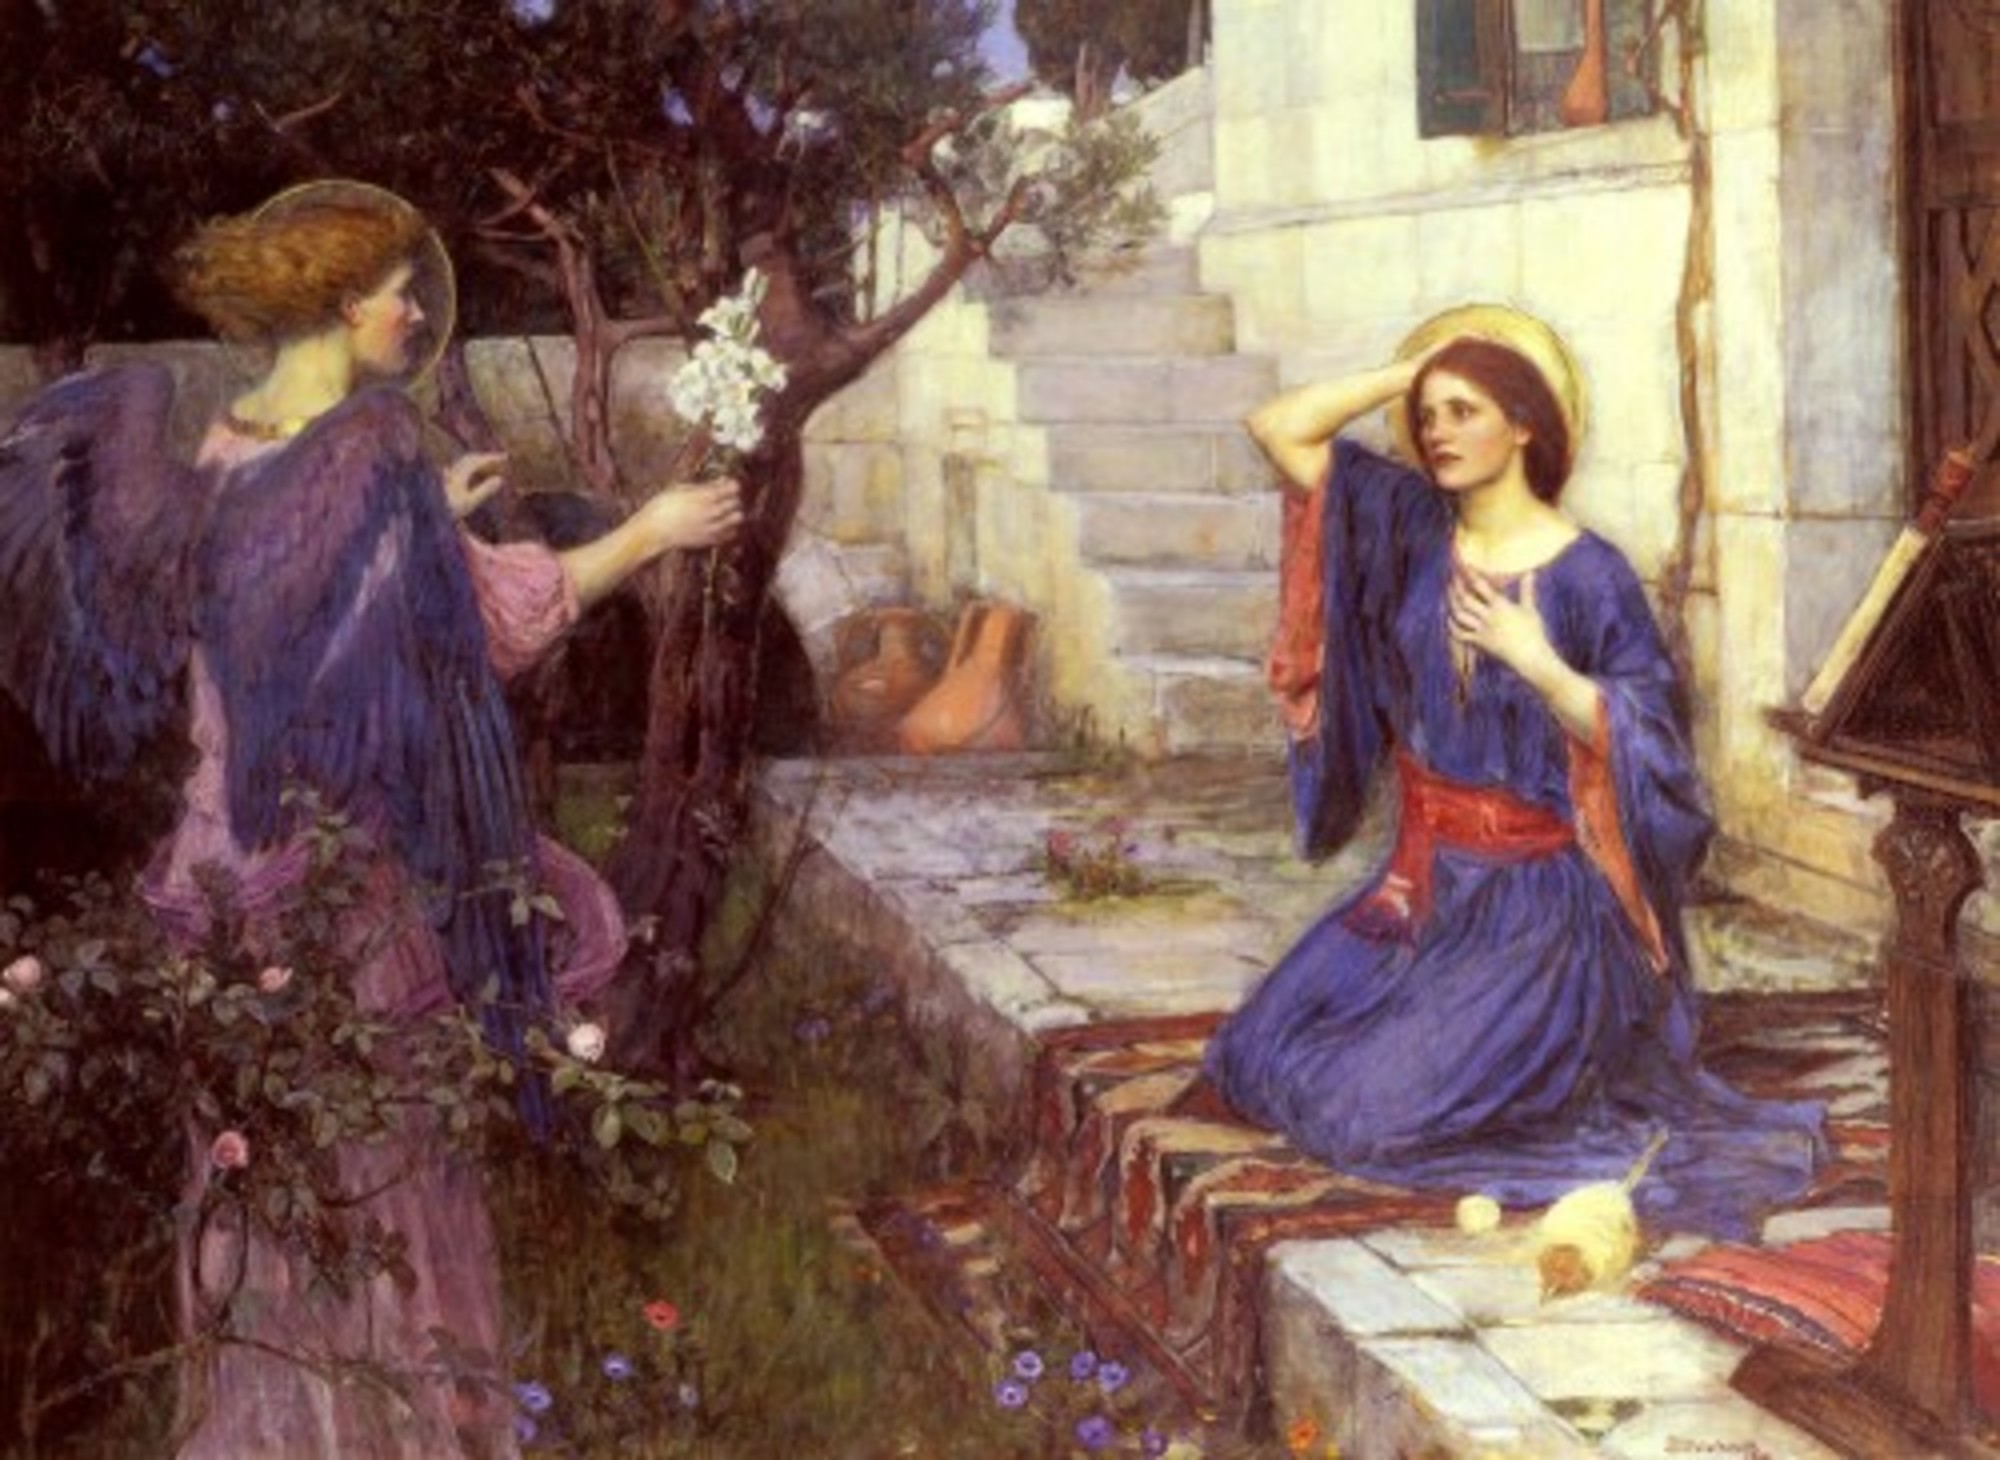 John_William_Waterhouse_-_The_Annunciation.jpg